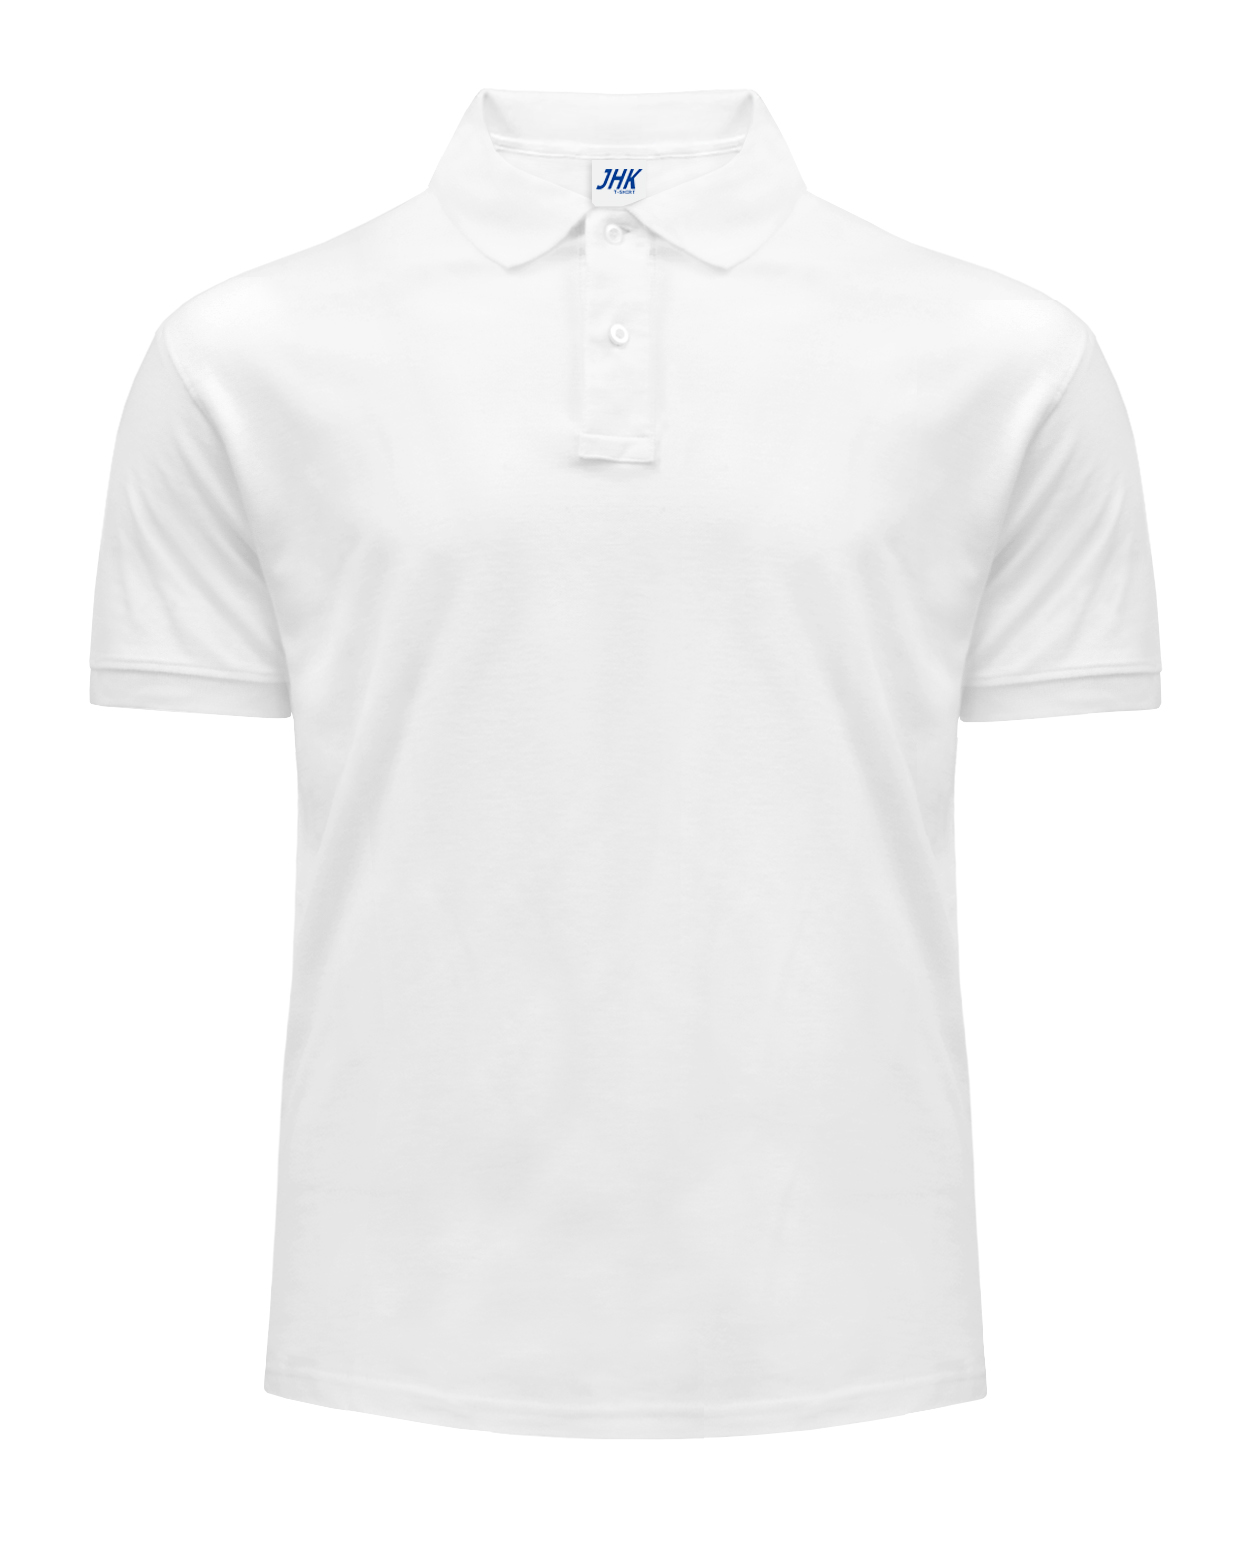 POLO JHK WORKER BLANCO 210gr